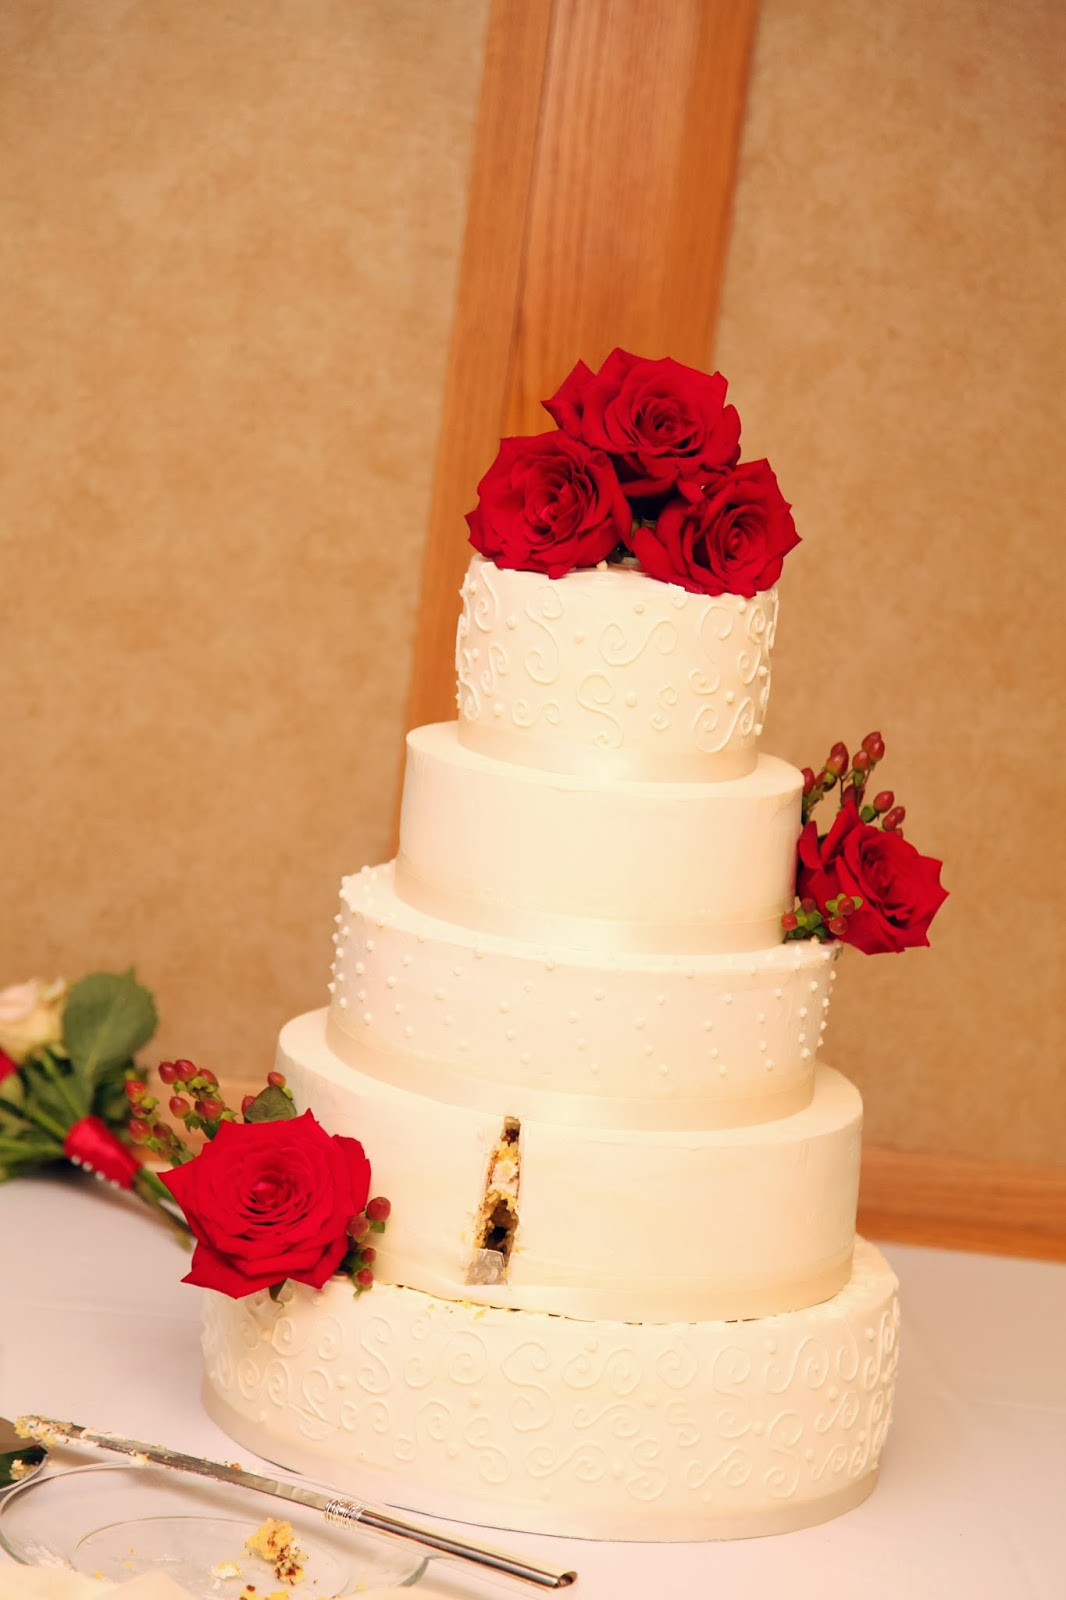 Ivory Rose Wedding Cake Noel Alderman J Adore Gateau